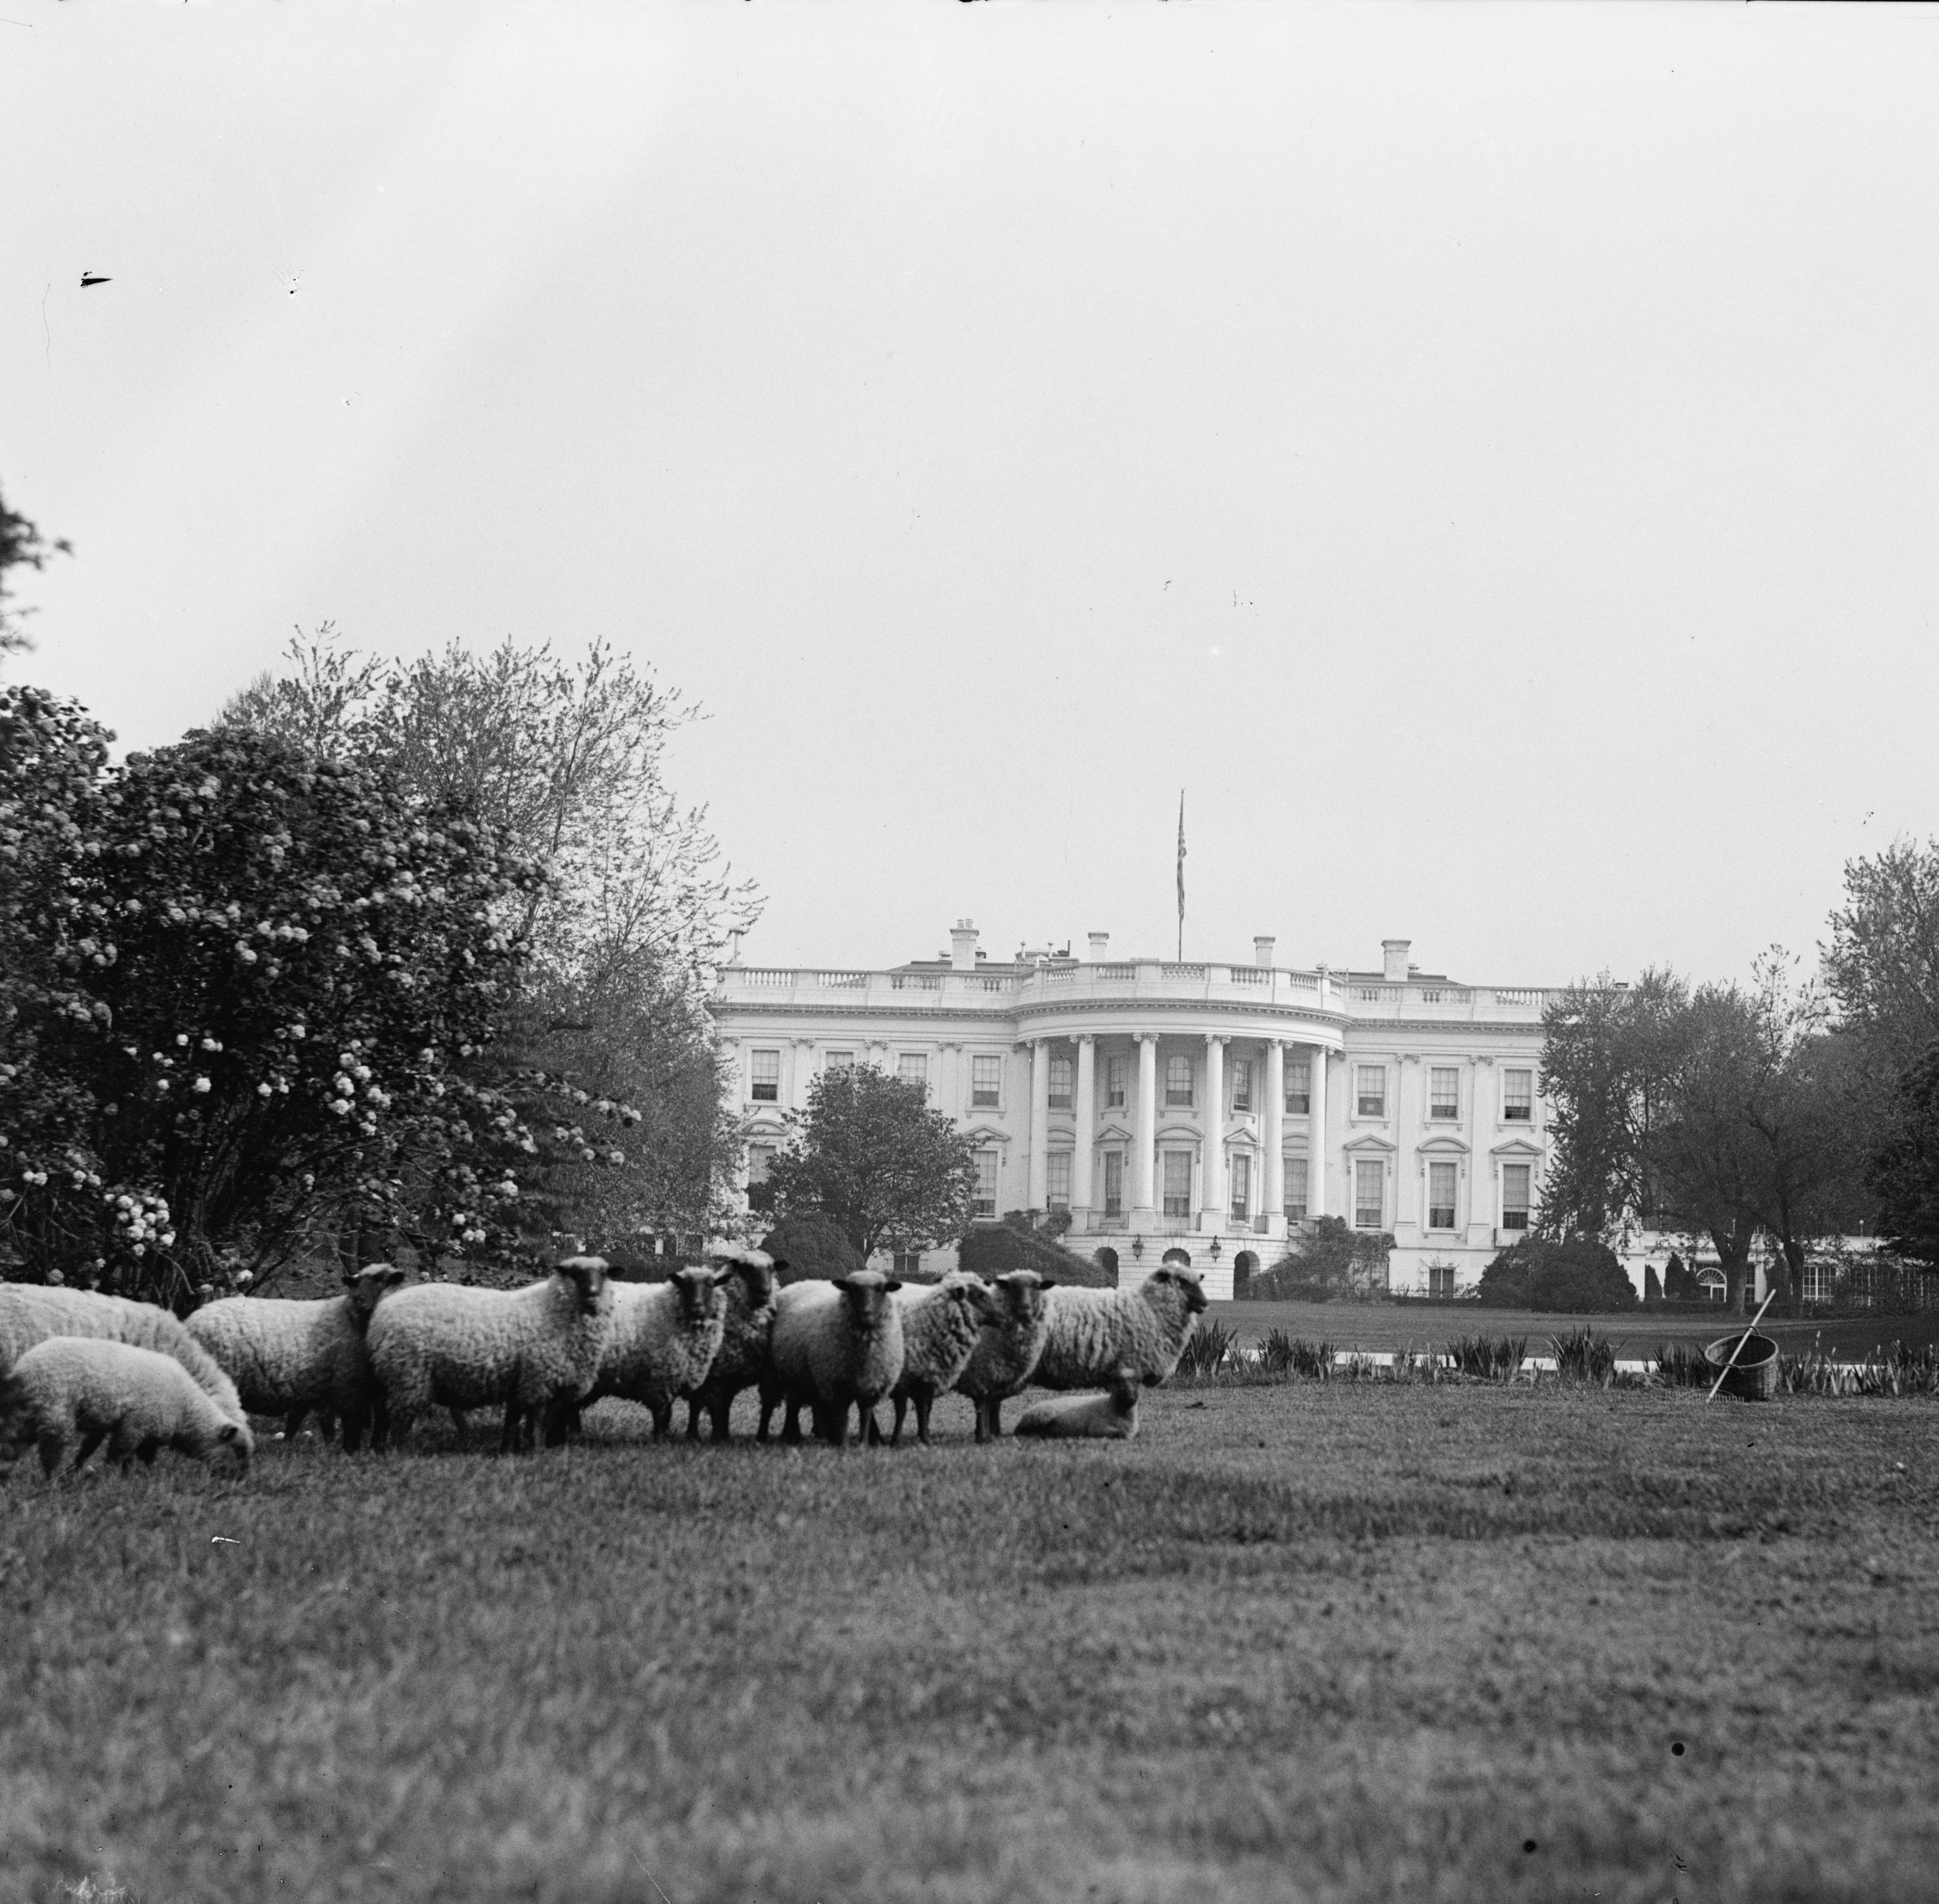 Sheep on lawn of White House